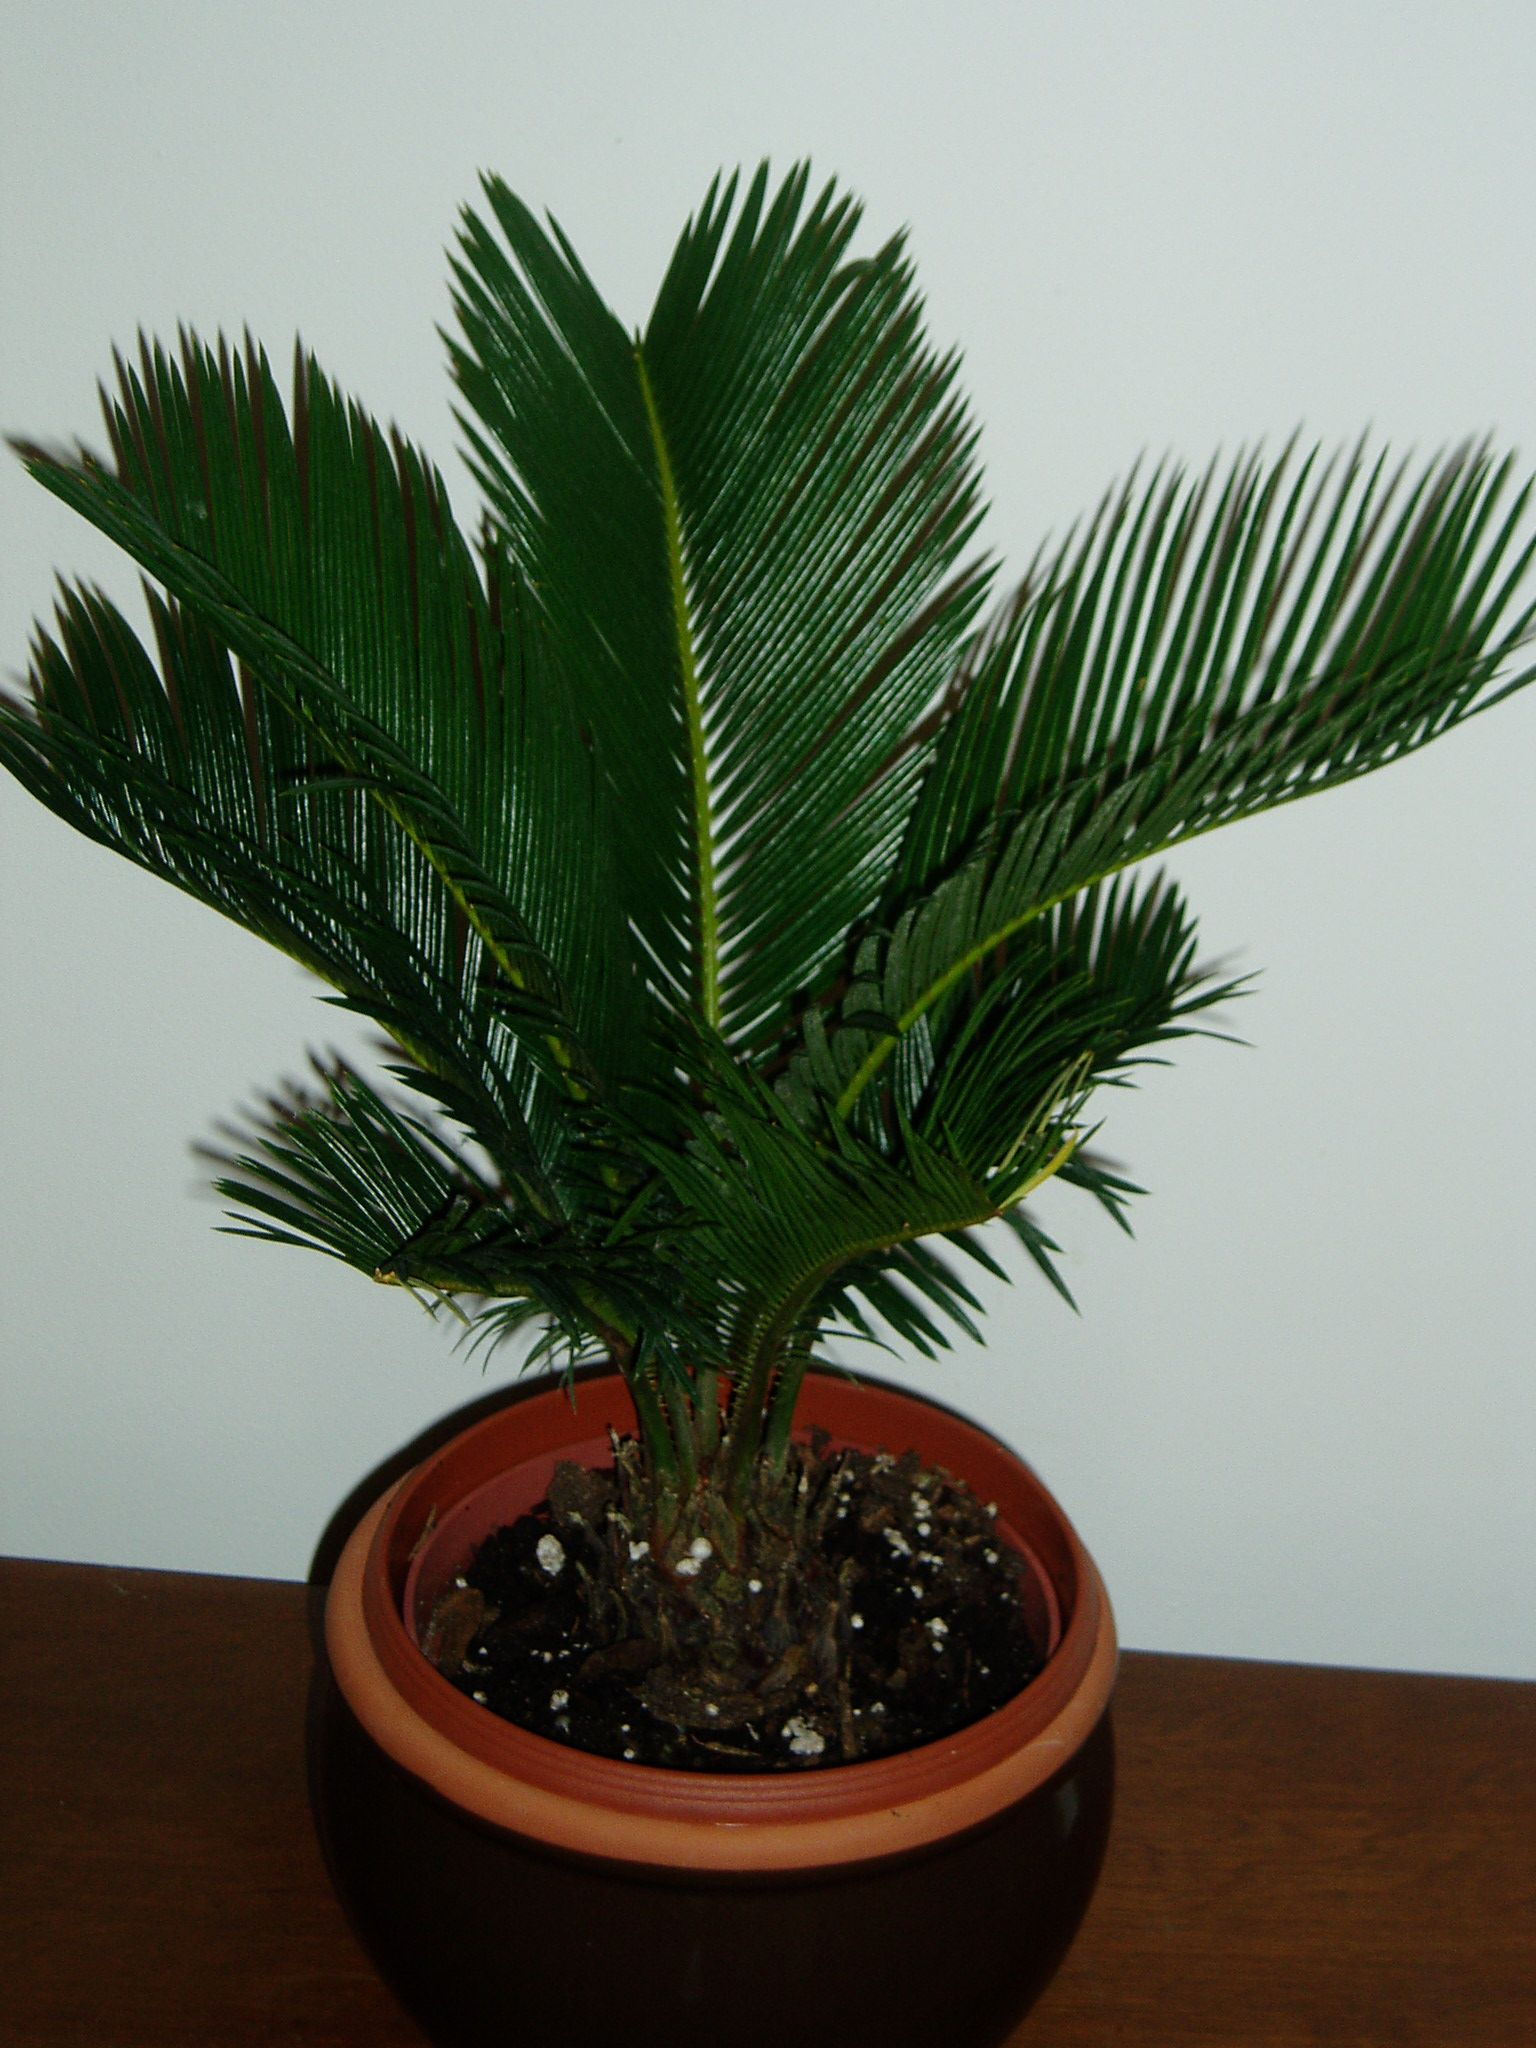 177aa5412ab5fff1320dc9a5f29d7625 Palm Plants For Home on herb plants for home, water plants for home, potted plants for home, indoor plants for home, vine plants for home, decorative plants for home, tropical plants for home,